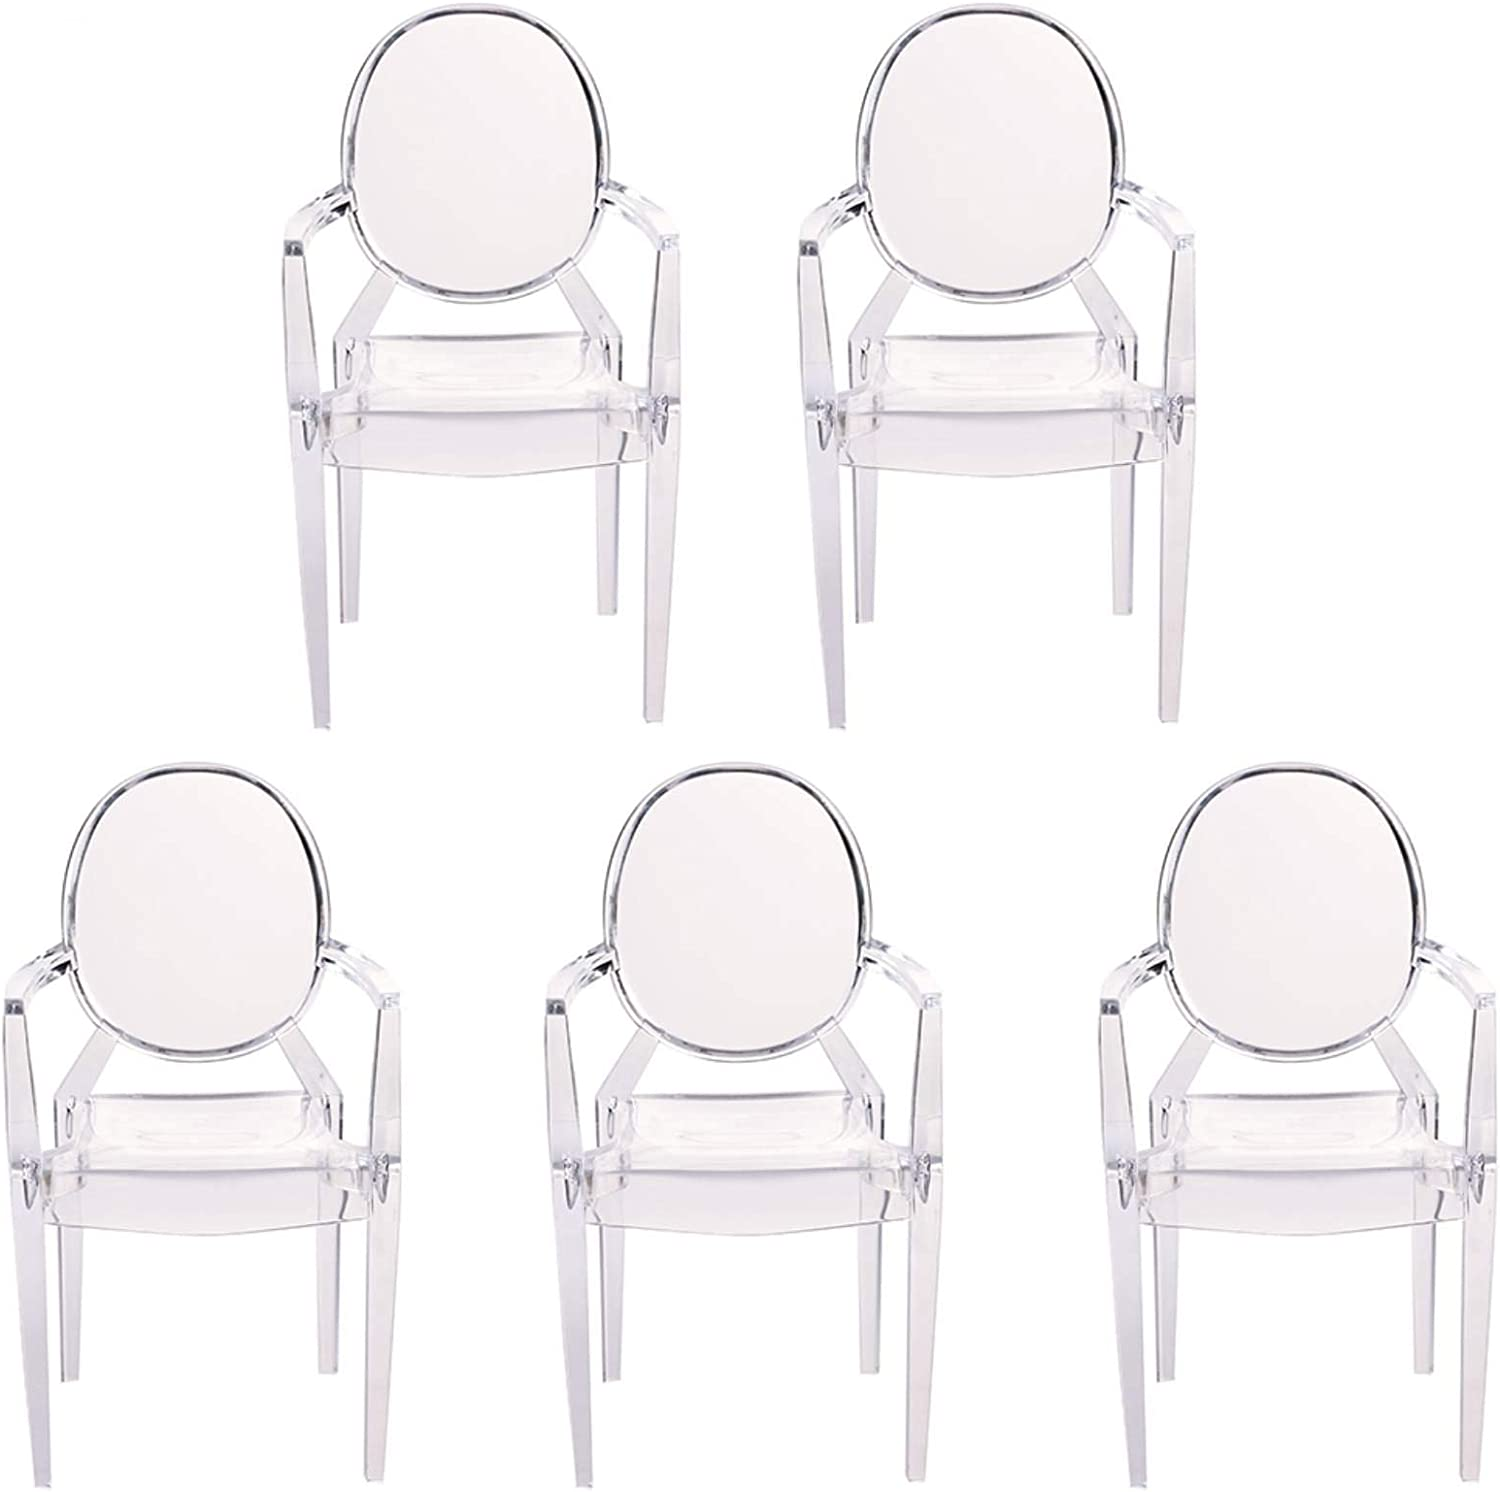 Tmtop 5PCS Miniature Armchair Plastic Chair Model Furniture for 1/6 Doll House Accessories White